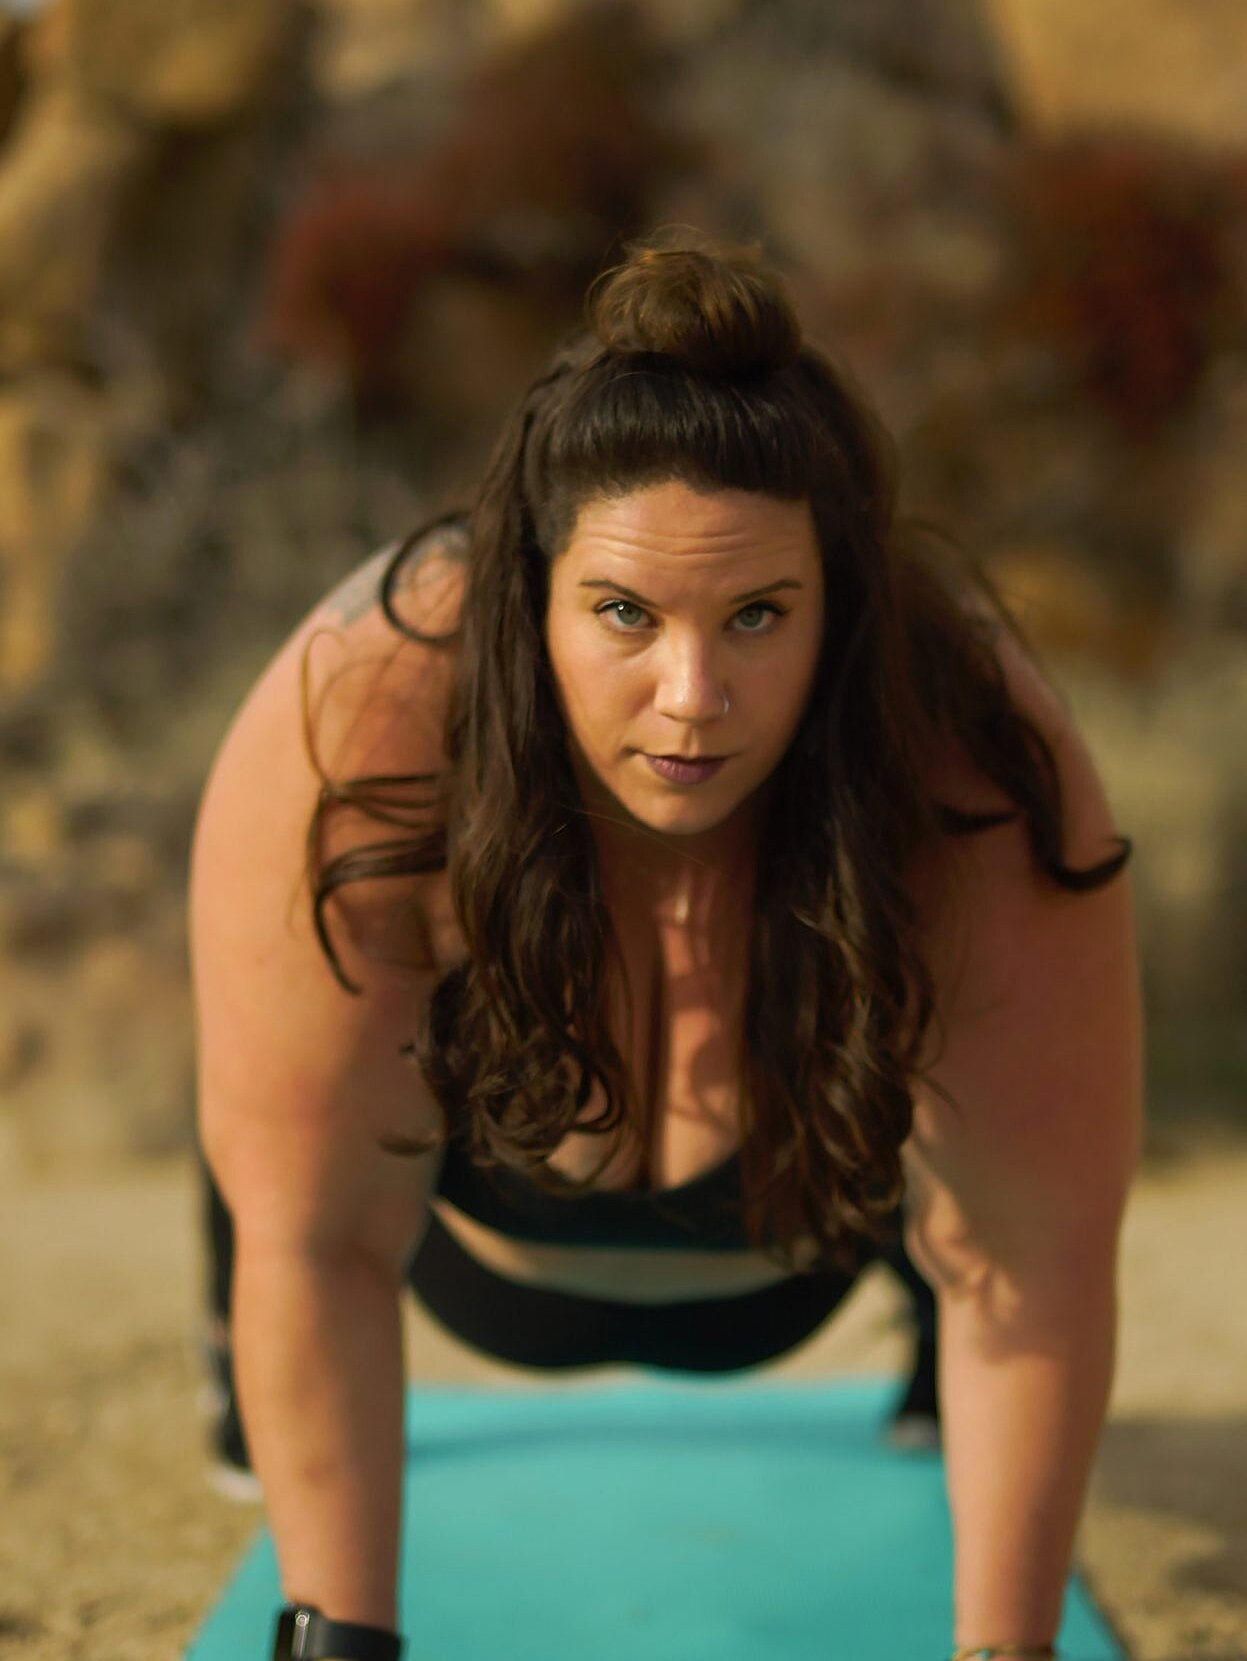 Whitney Way Thore on Other People's 'Fat Phobia' at the Gym ...